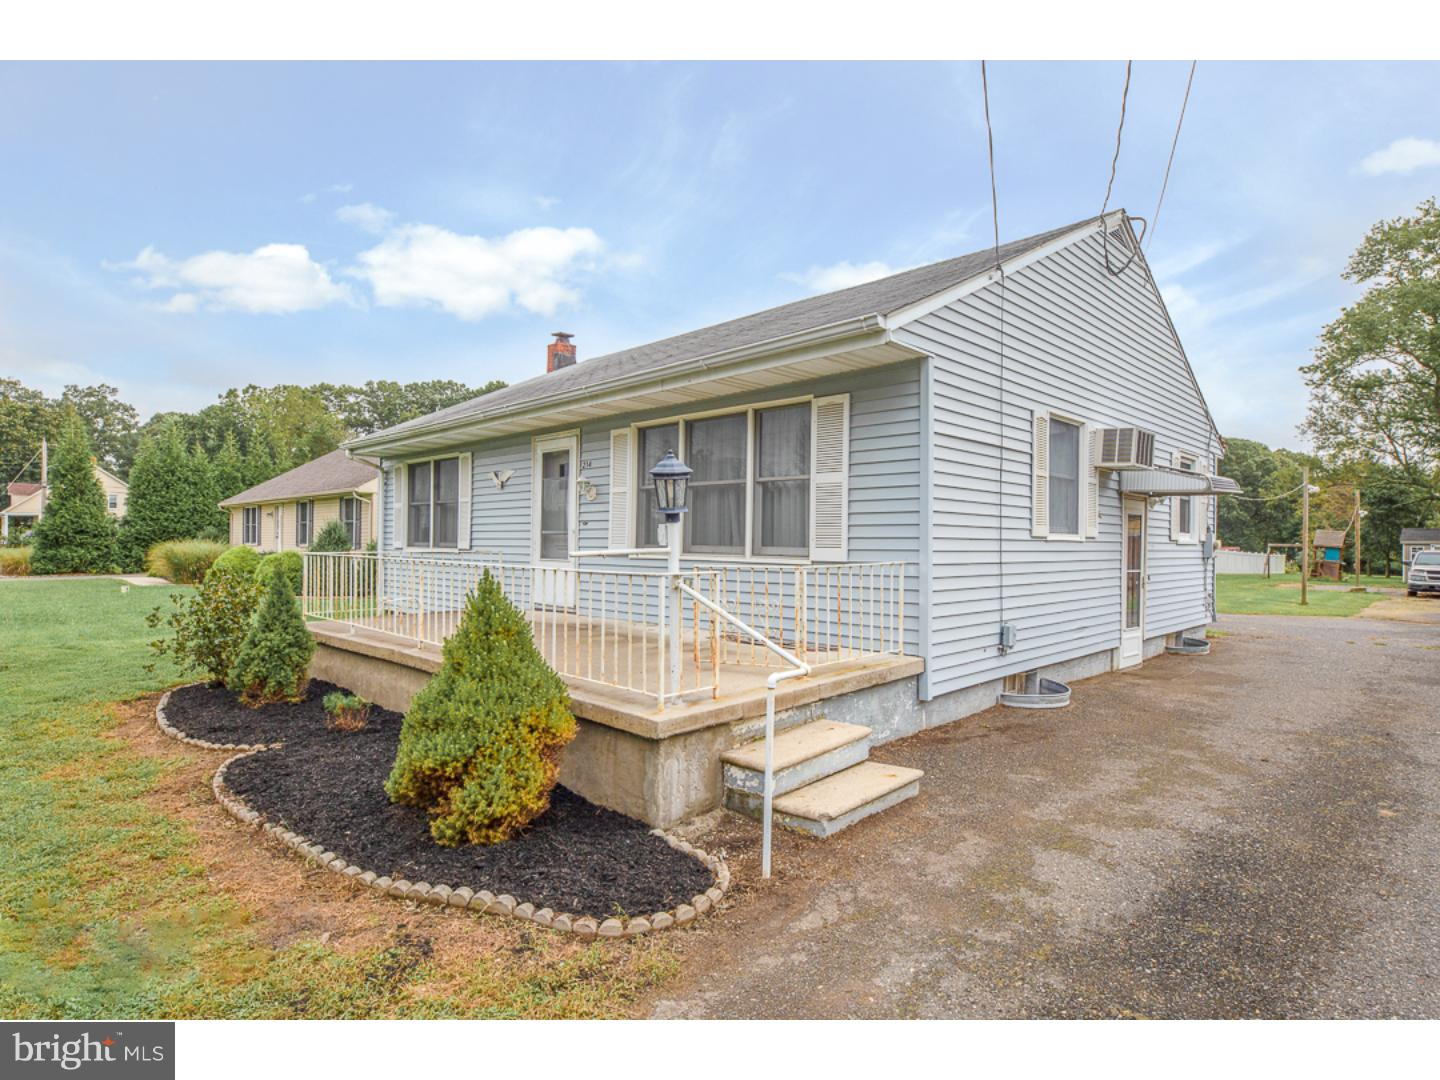 Single Family Home for Sale at 214 OLD DEERFIELD PIKE Upper Deerfield Township, New Jersey 08302 United States